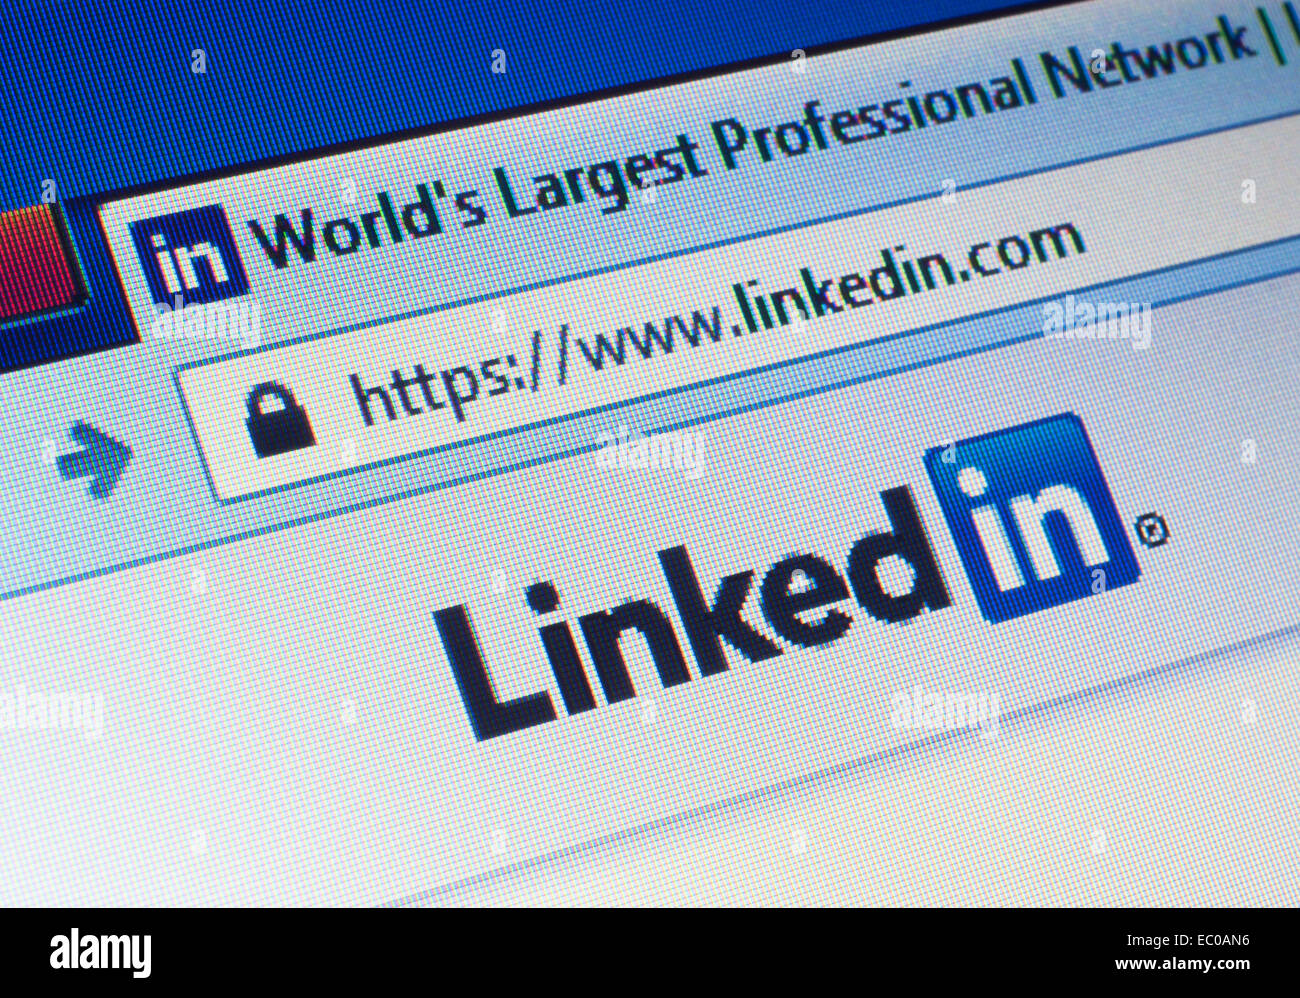 GDANSK, POLAND - 18 MAY 2014. Linkedin.com homepage on the screen. Editorial use only - Stock Image